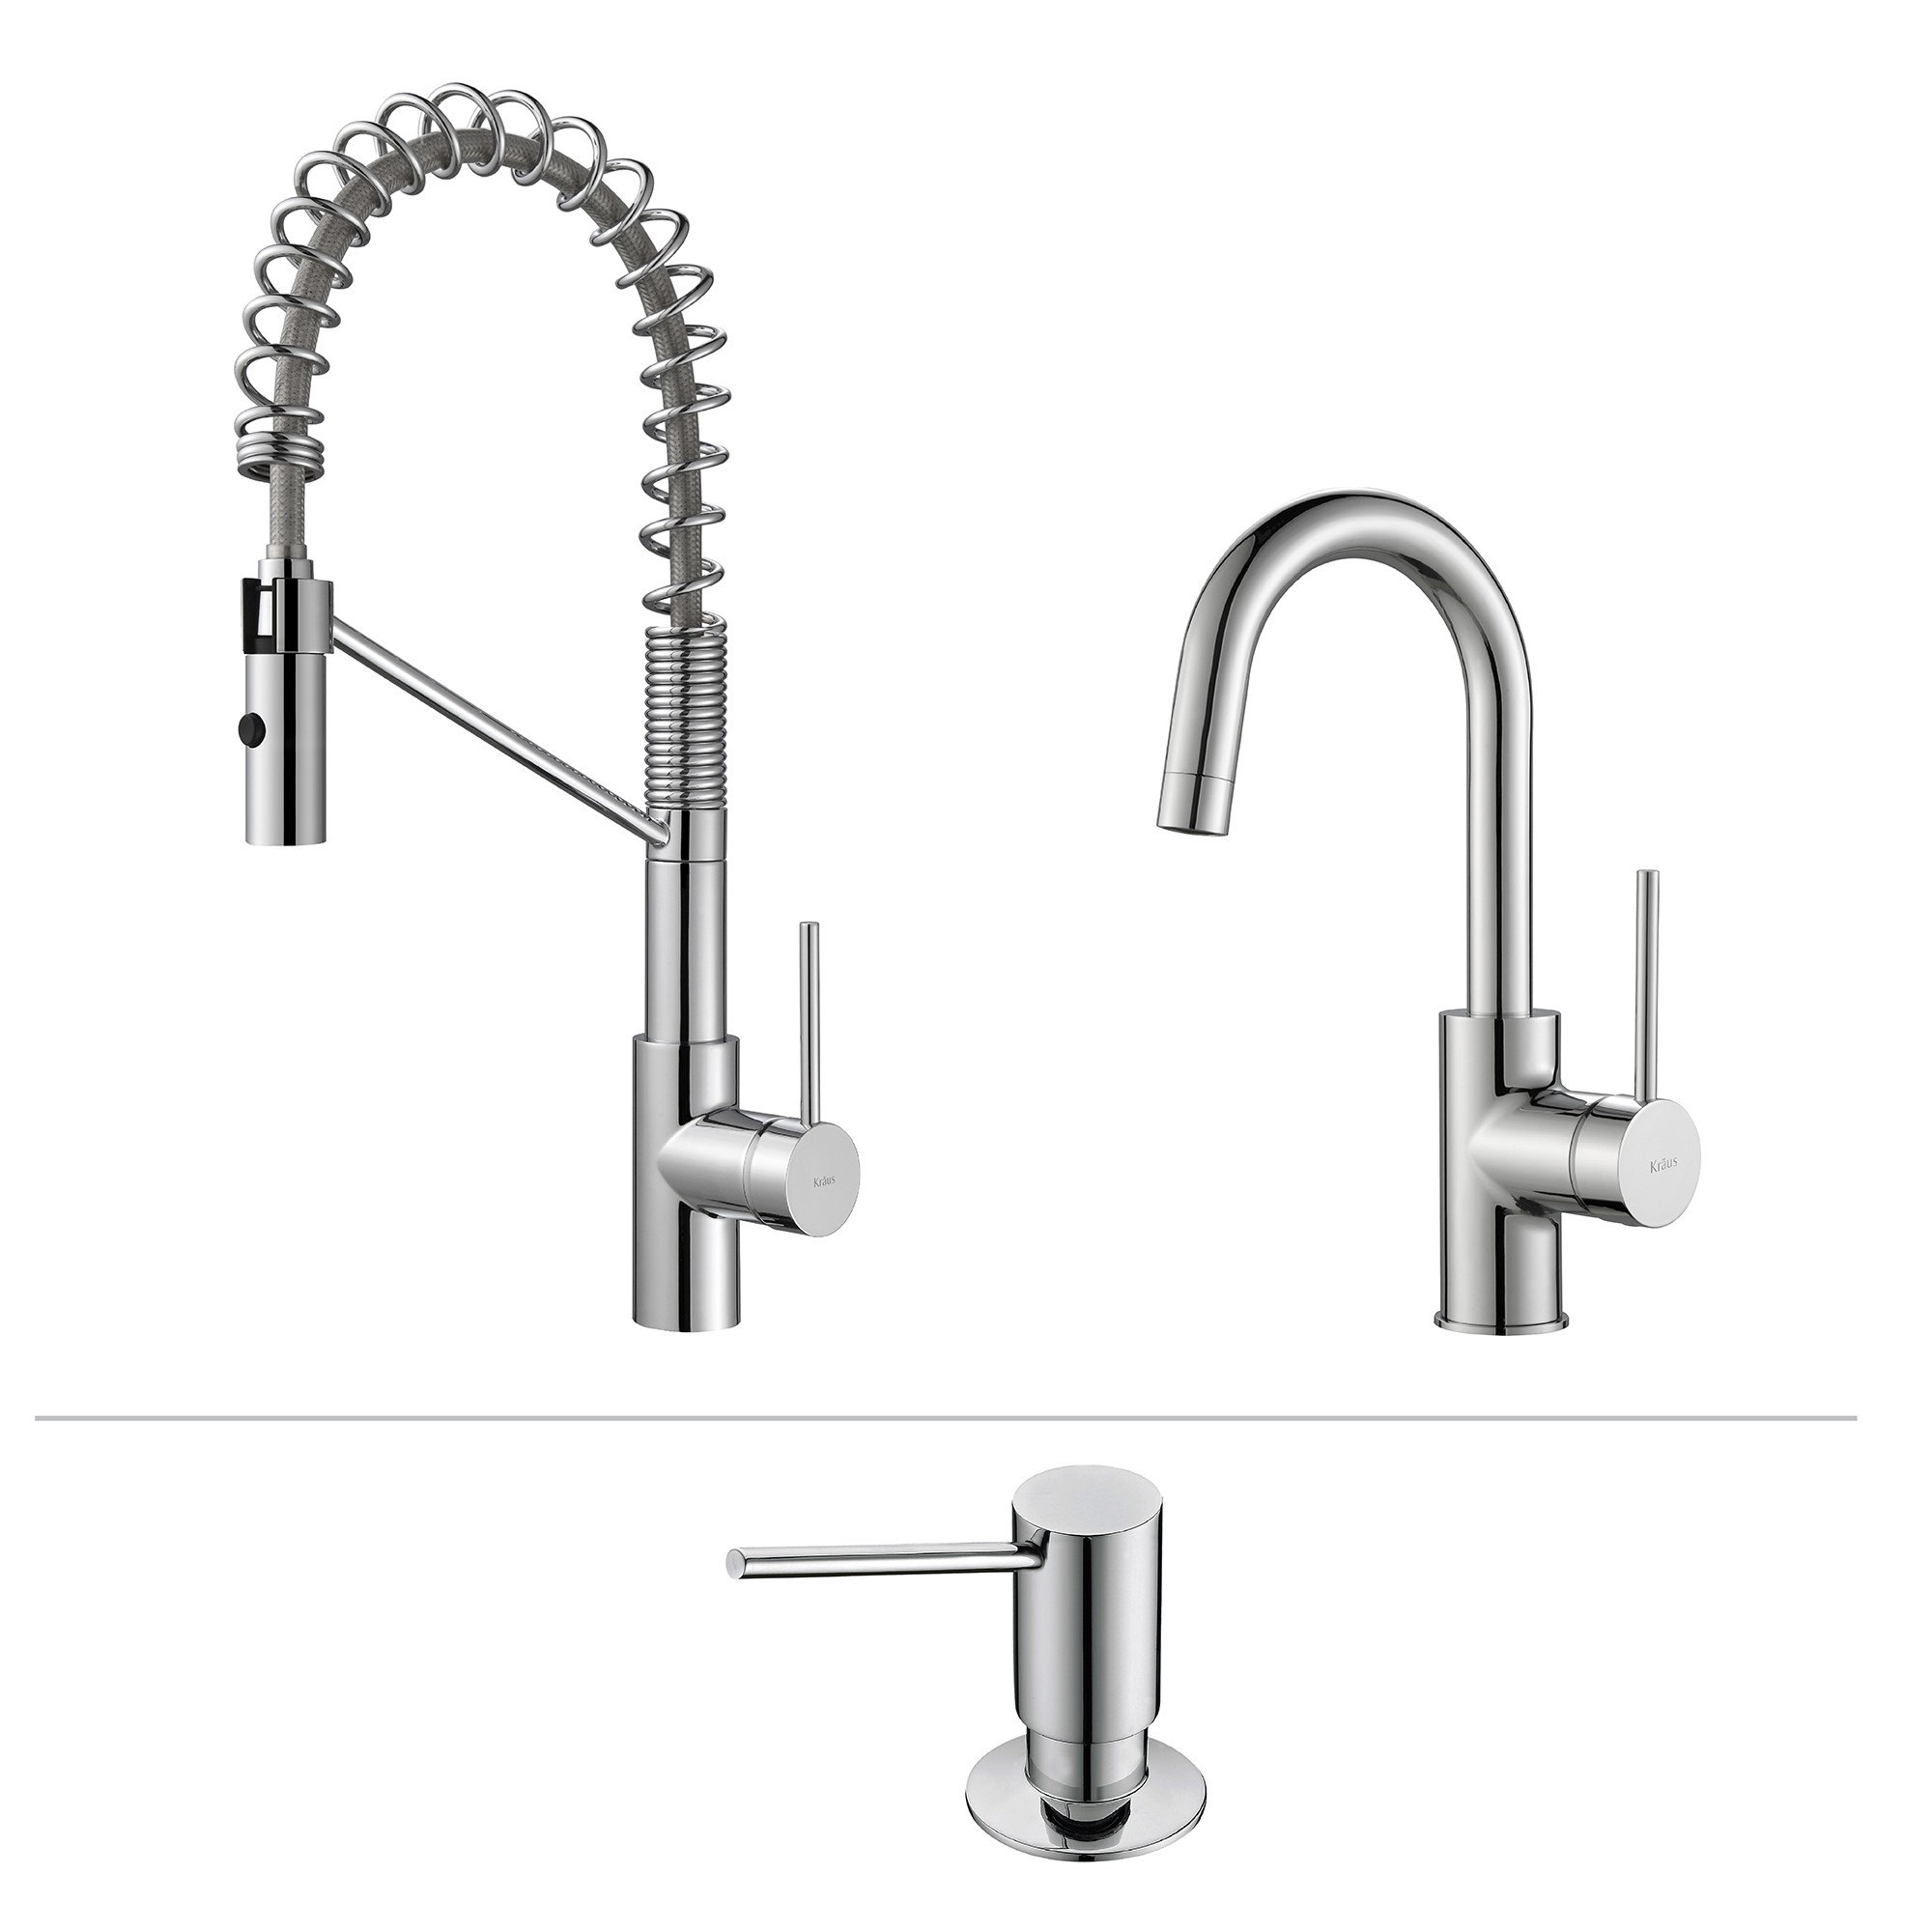 Ideas, kraus faucets any good kraus faucets any good kraus kitchen faucets kraususa 2000 x 2000  .